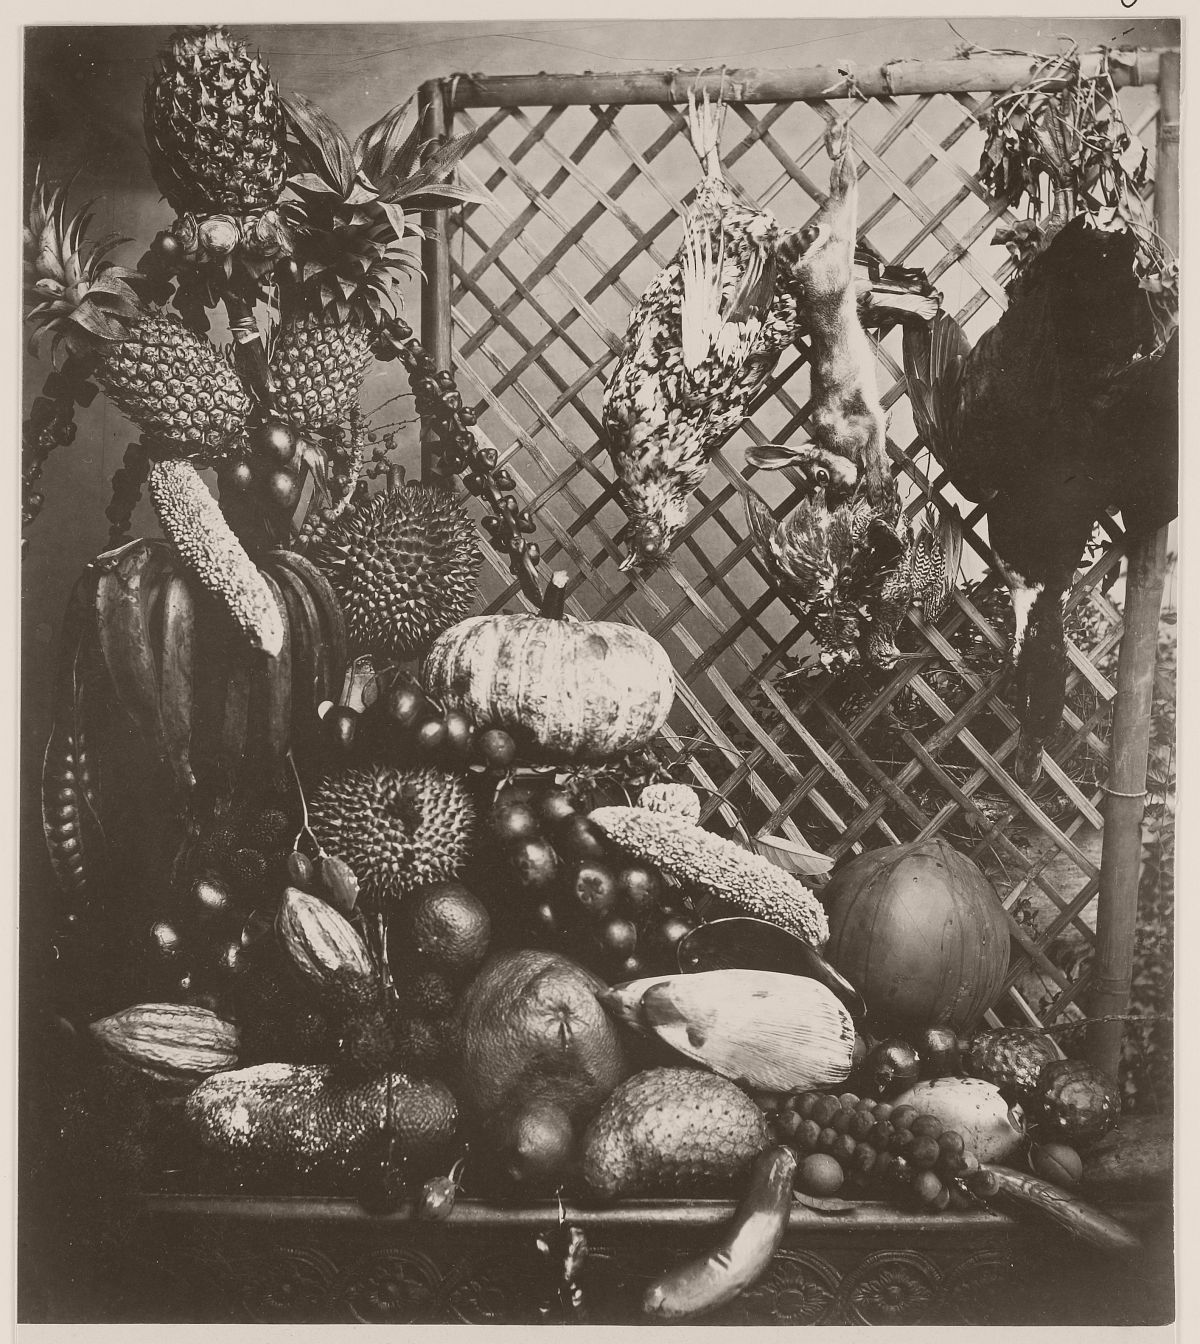 Fruit, game and poultry in Batavia, circa 1865.